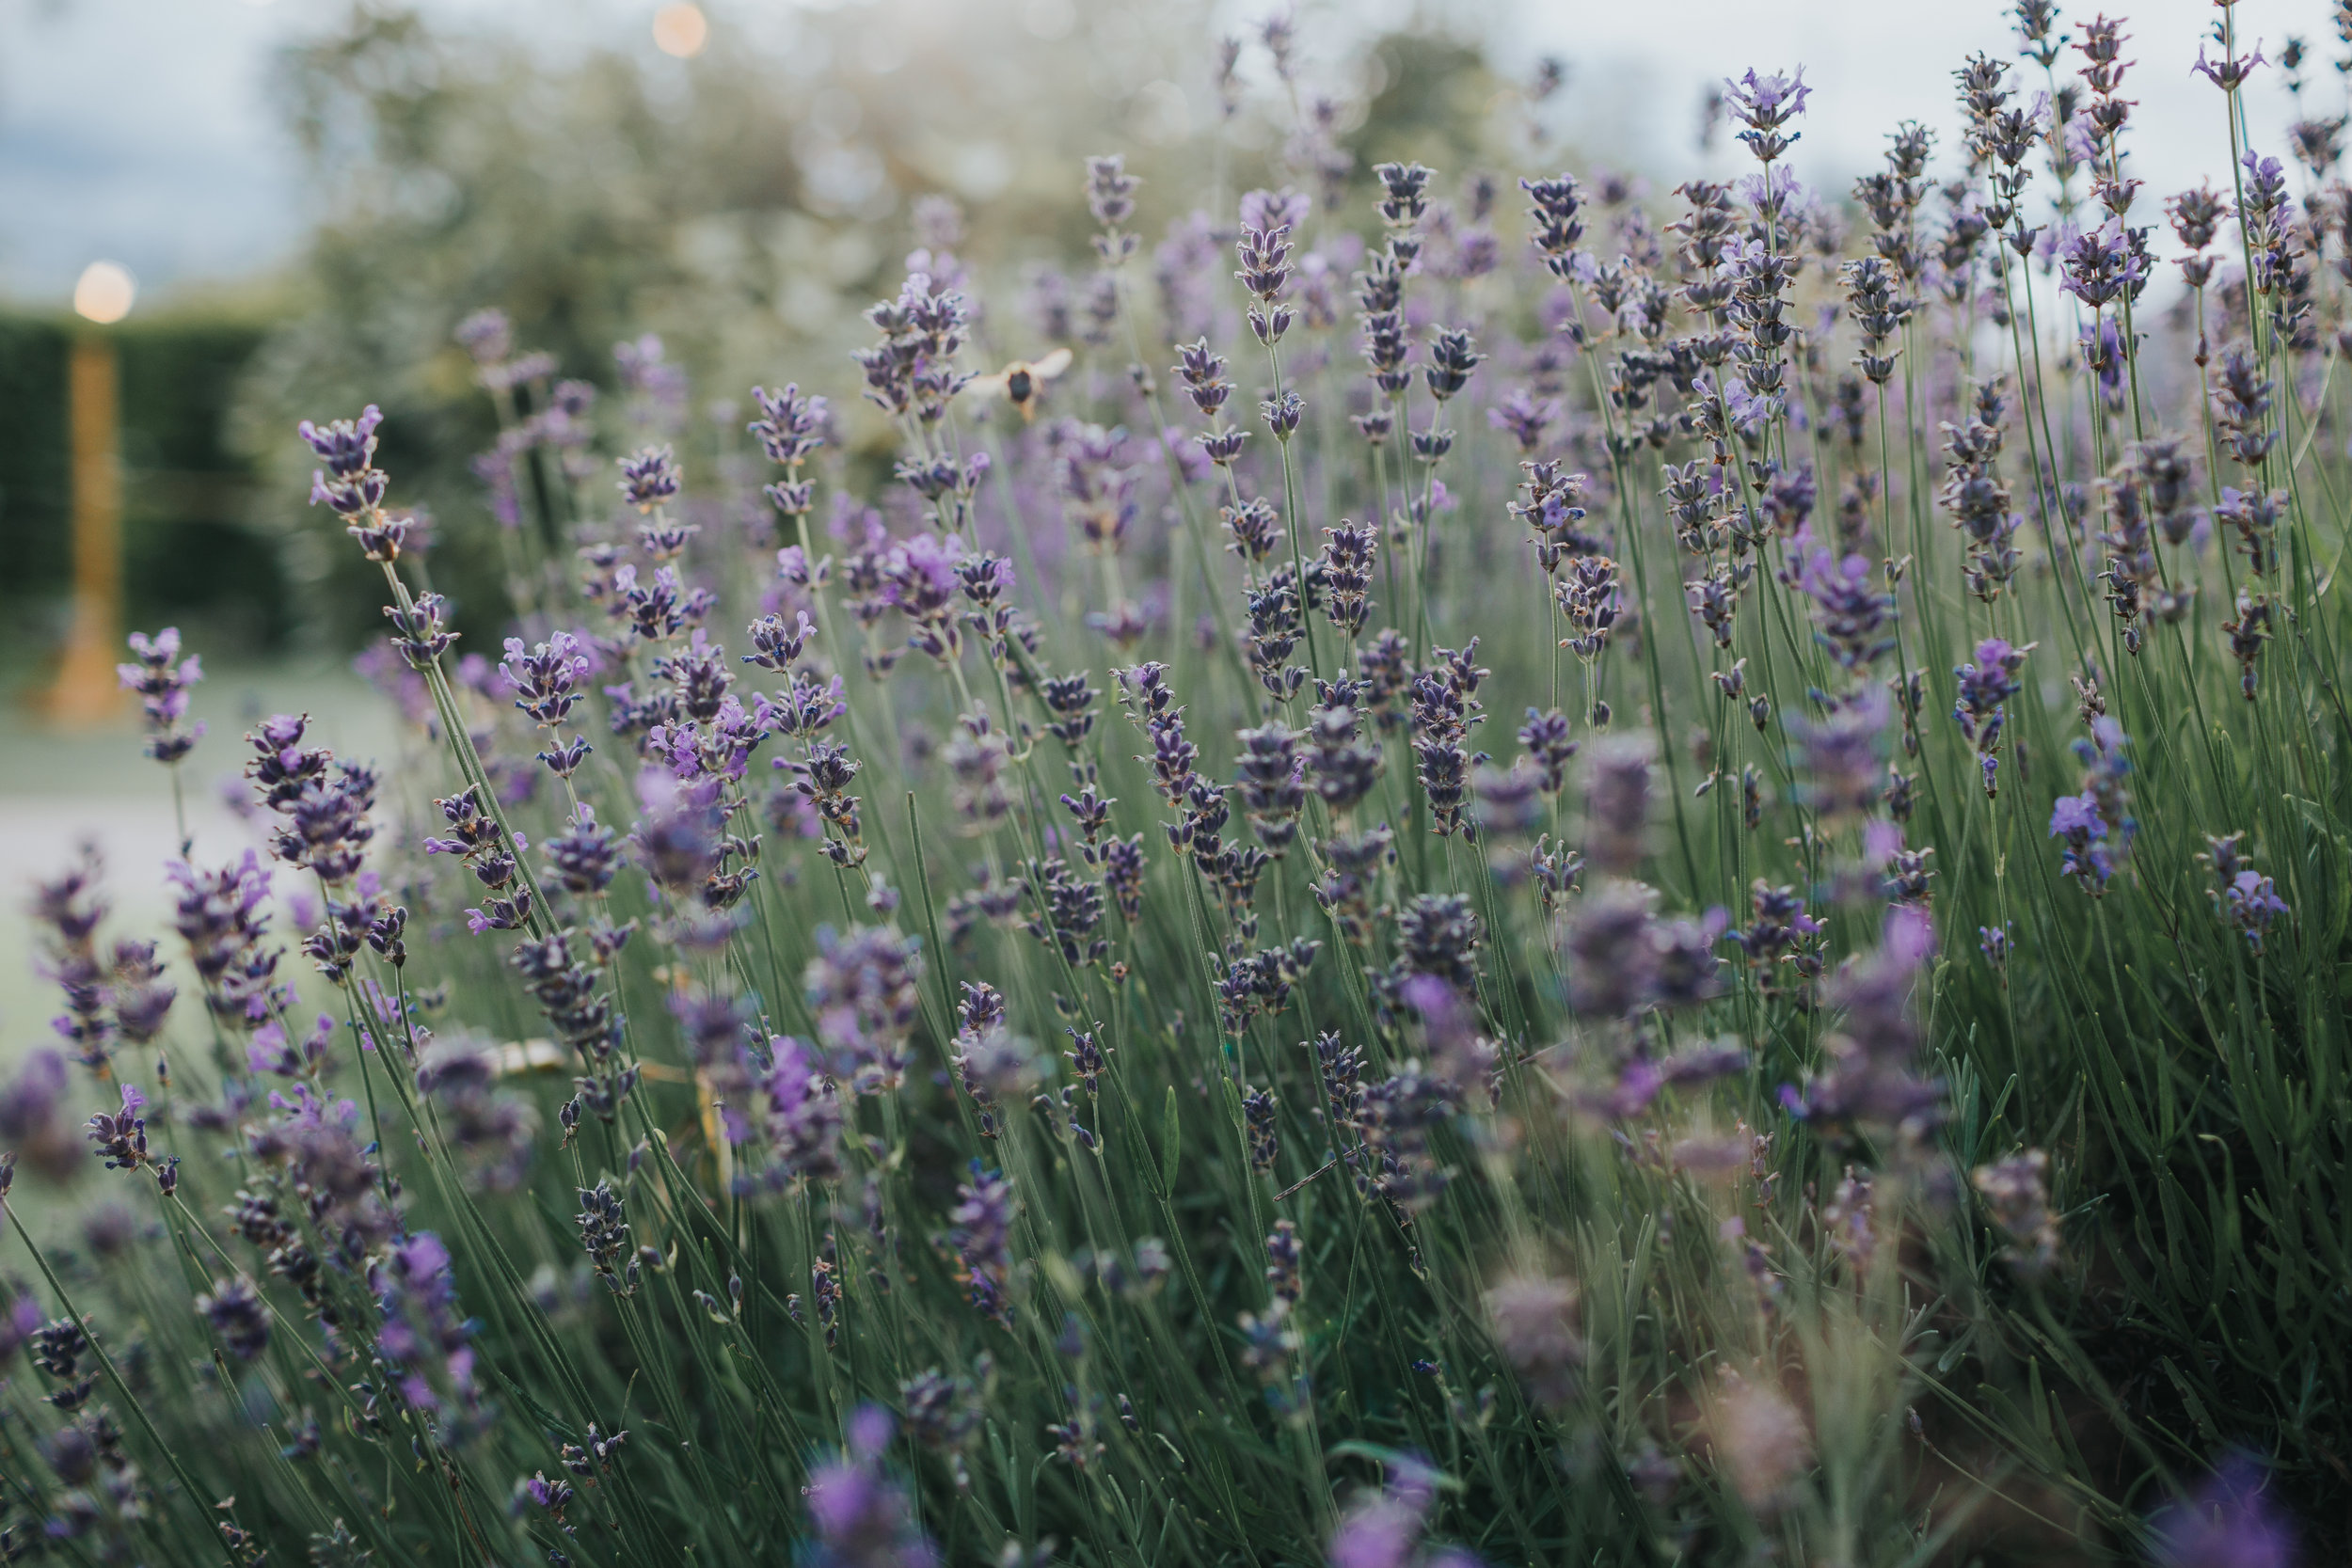 A bee flies through some lavender.